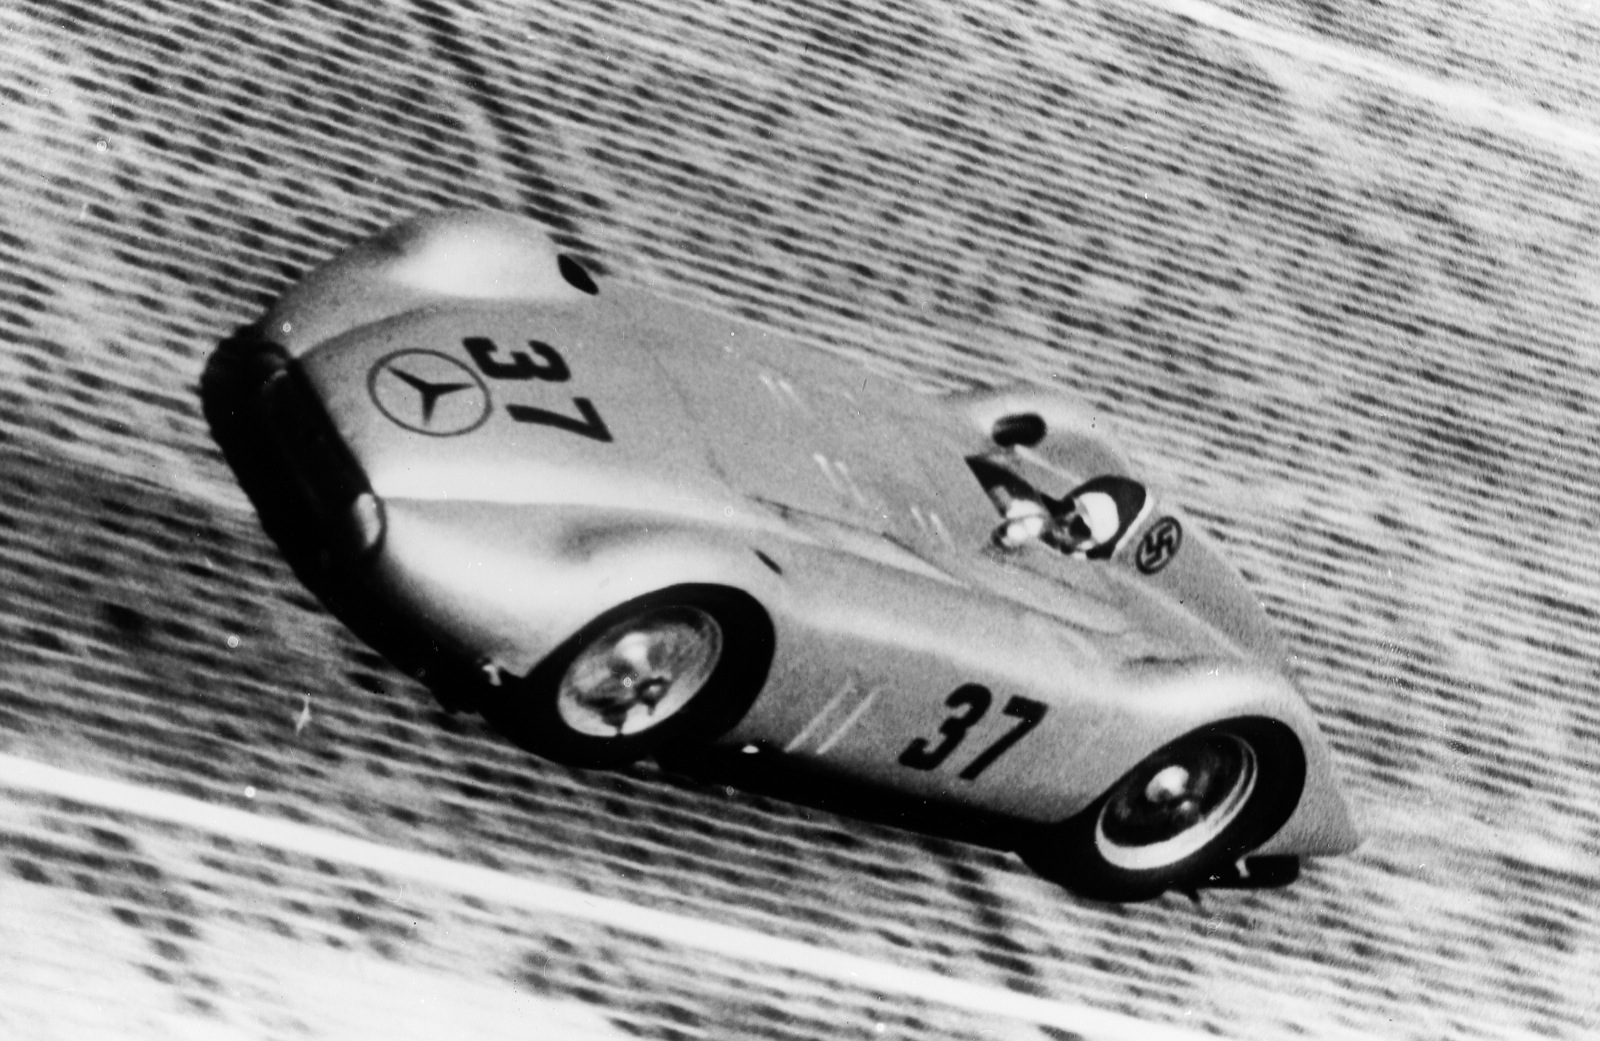 mercedes-benz streamliner #1